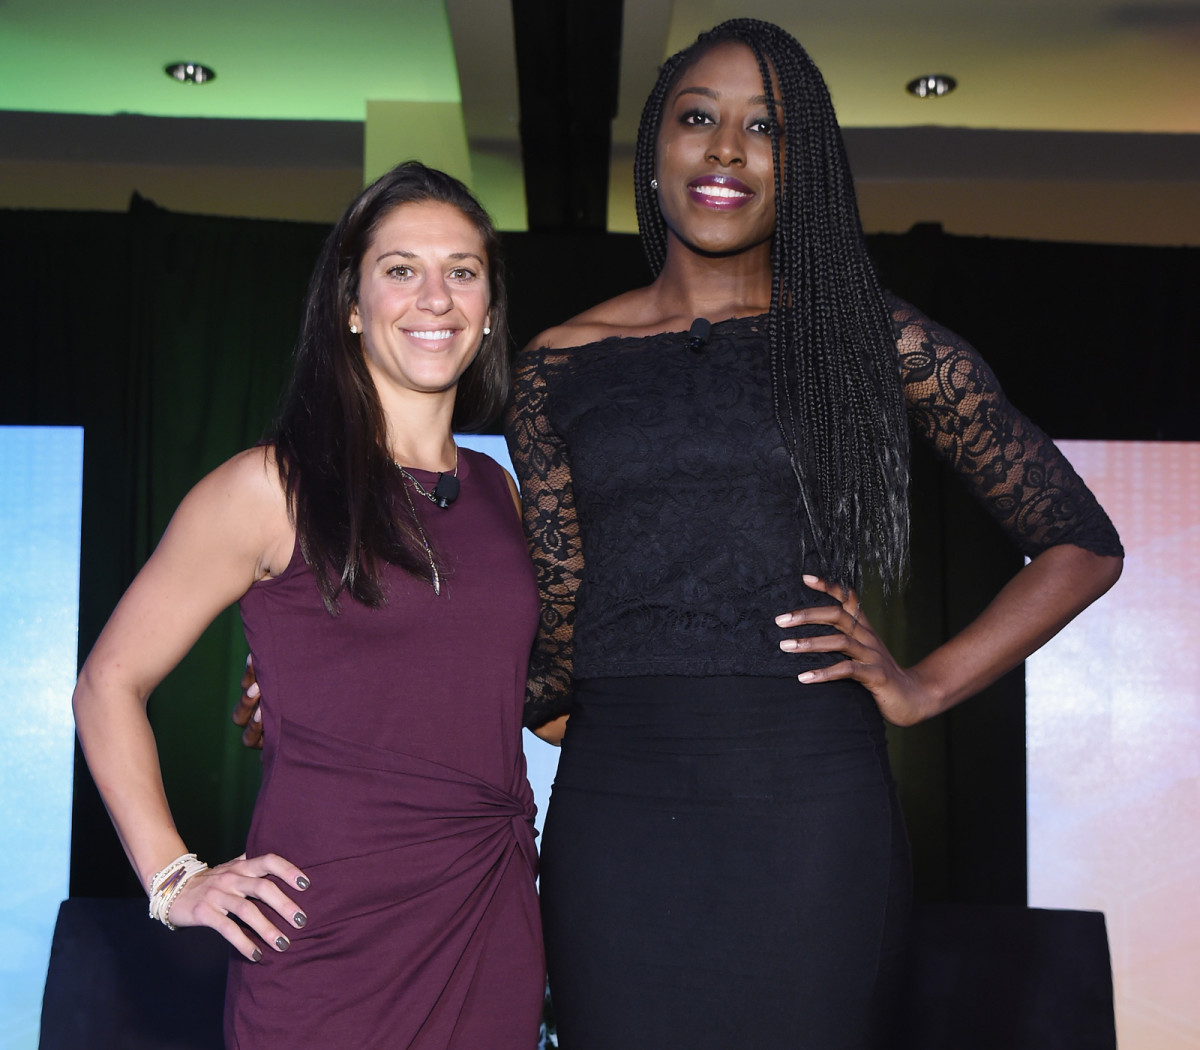 U.S. women's national team star Carli Lloyd stands with WNBA standout and players' association VP Chiney Ogwumike.